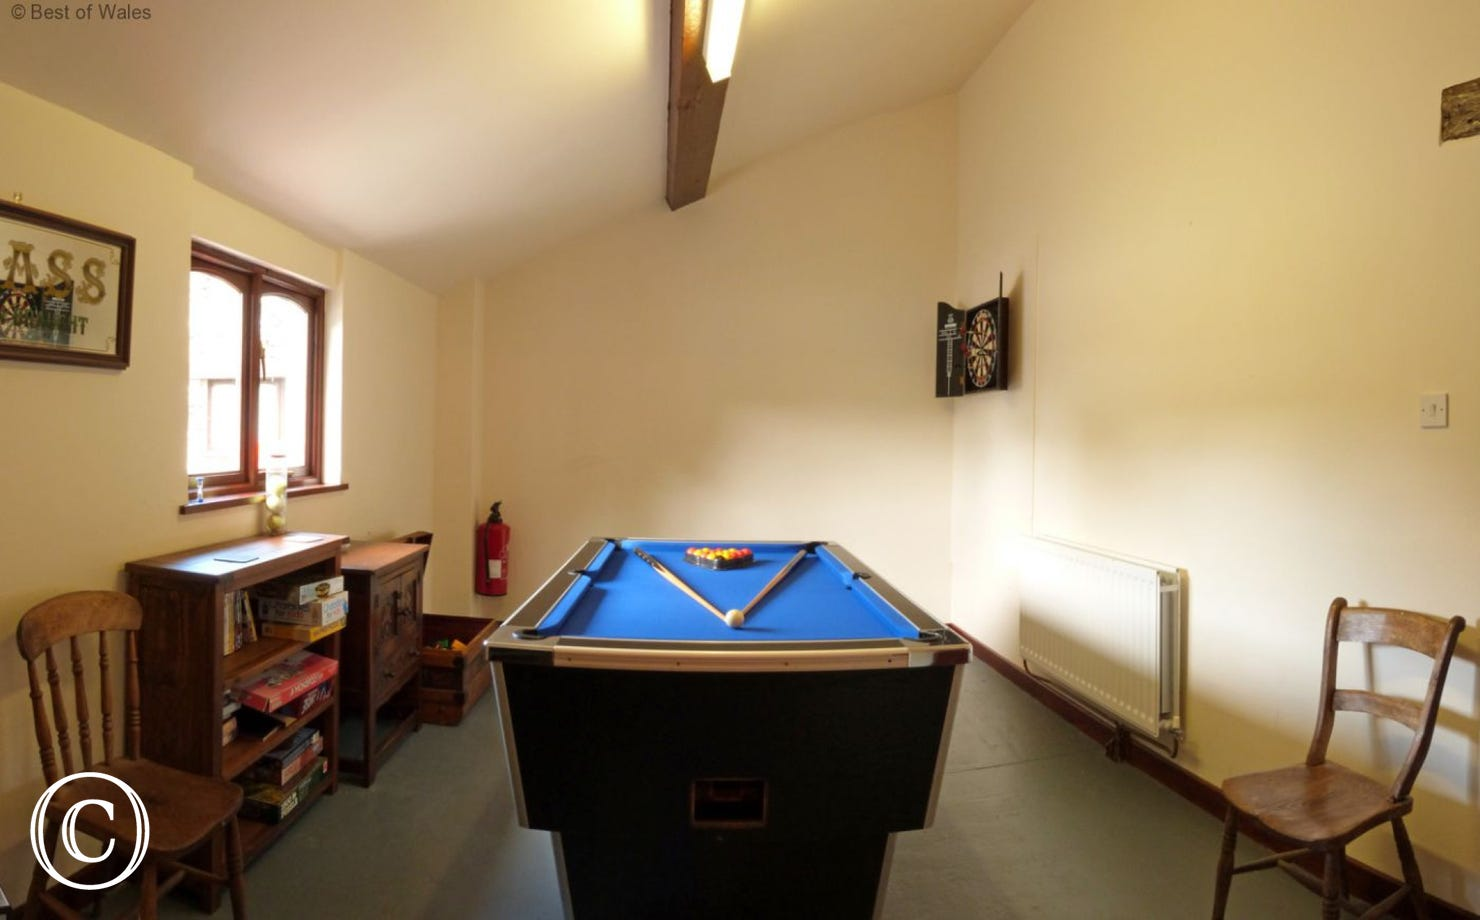 The shared games room on site includes a pool table and dart board.